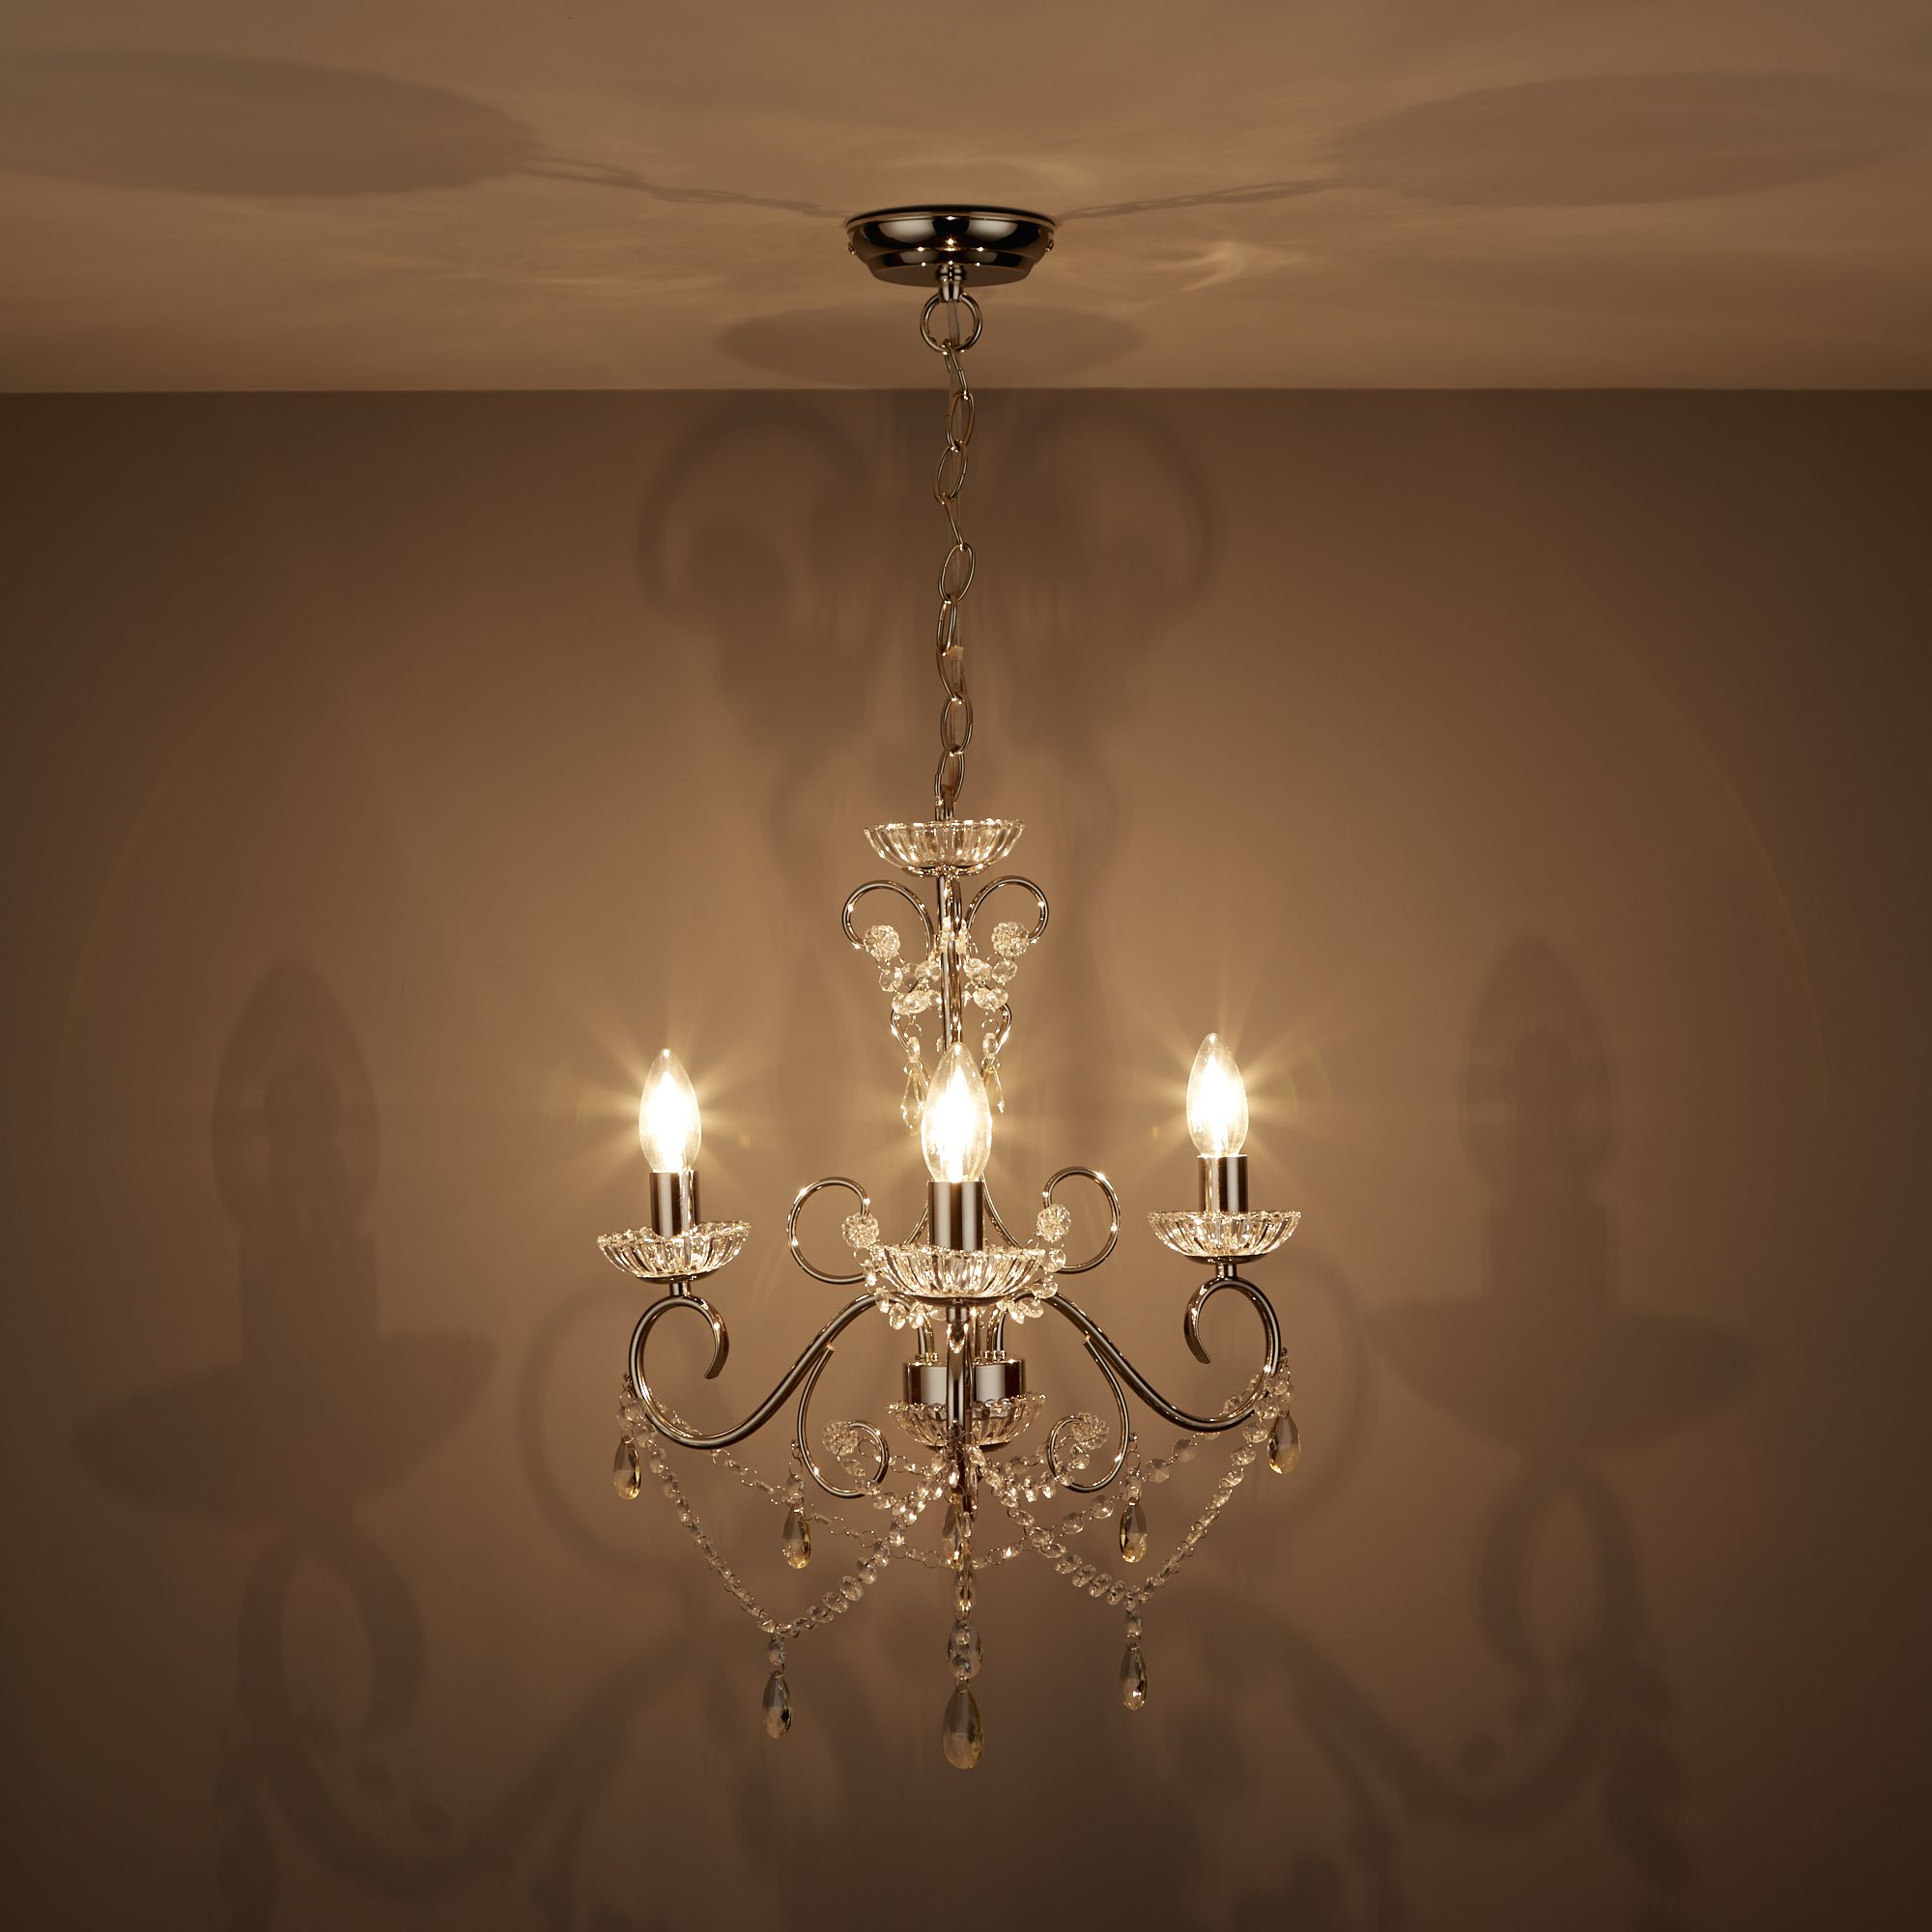 Chesworth Chandelier Nickel Effect 3 Lamp Ceiling Light